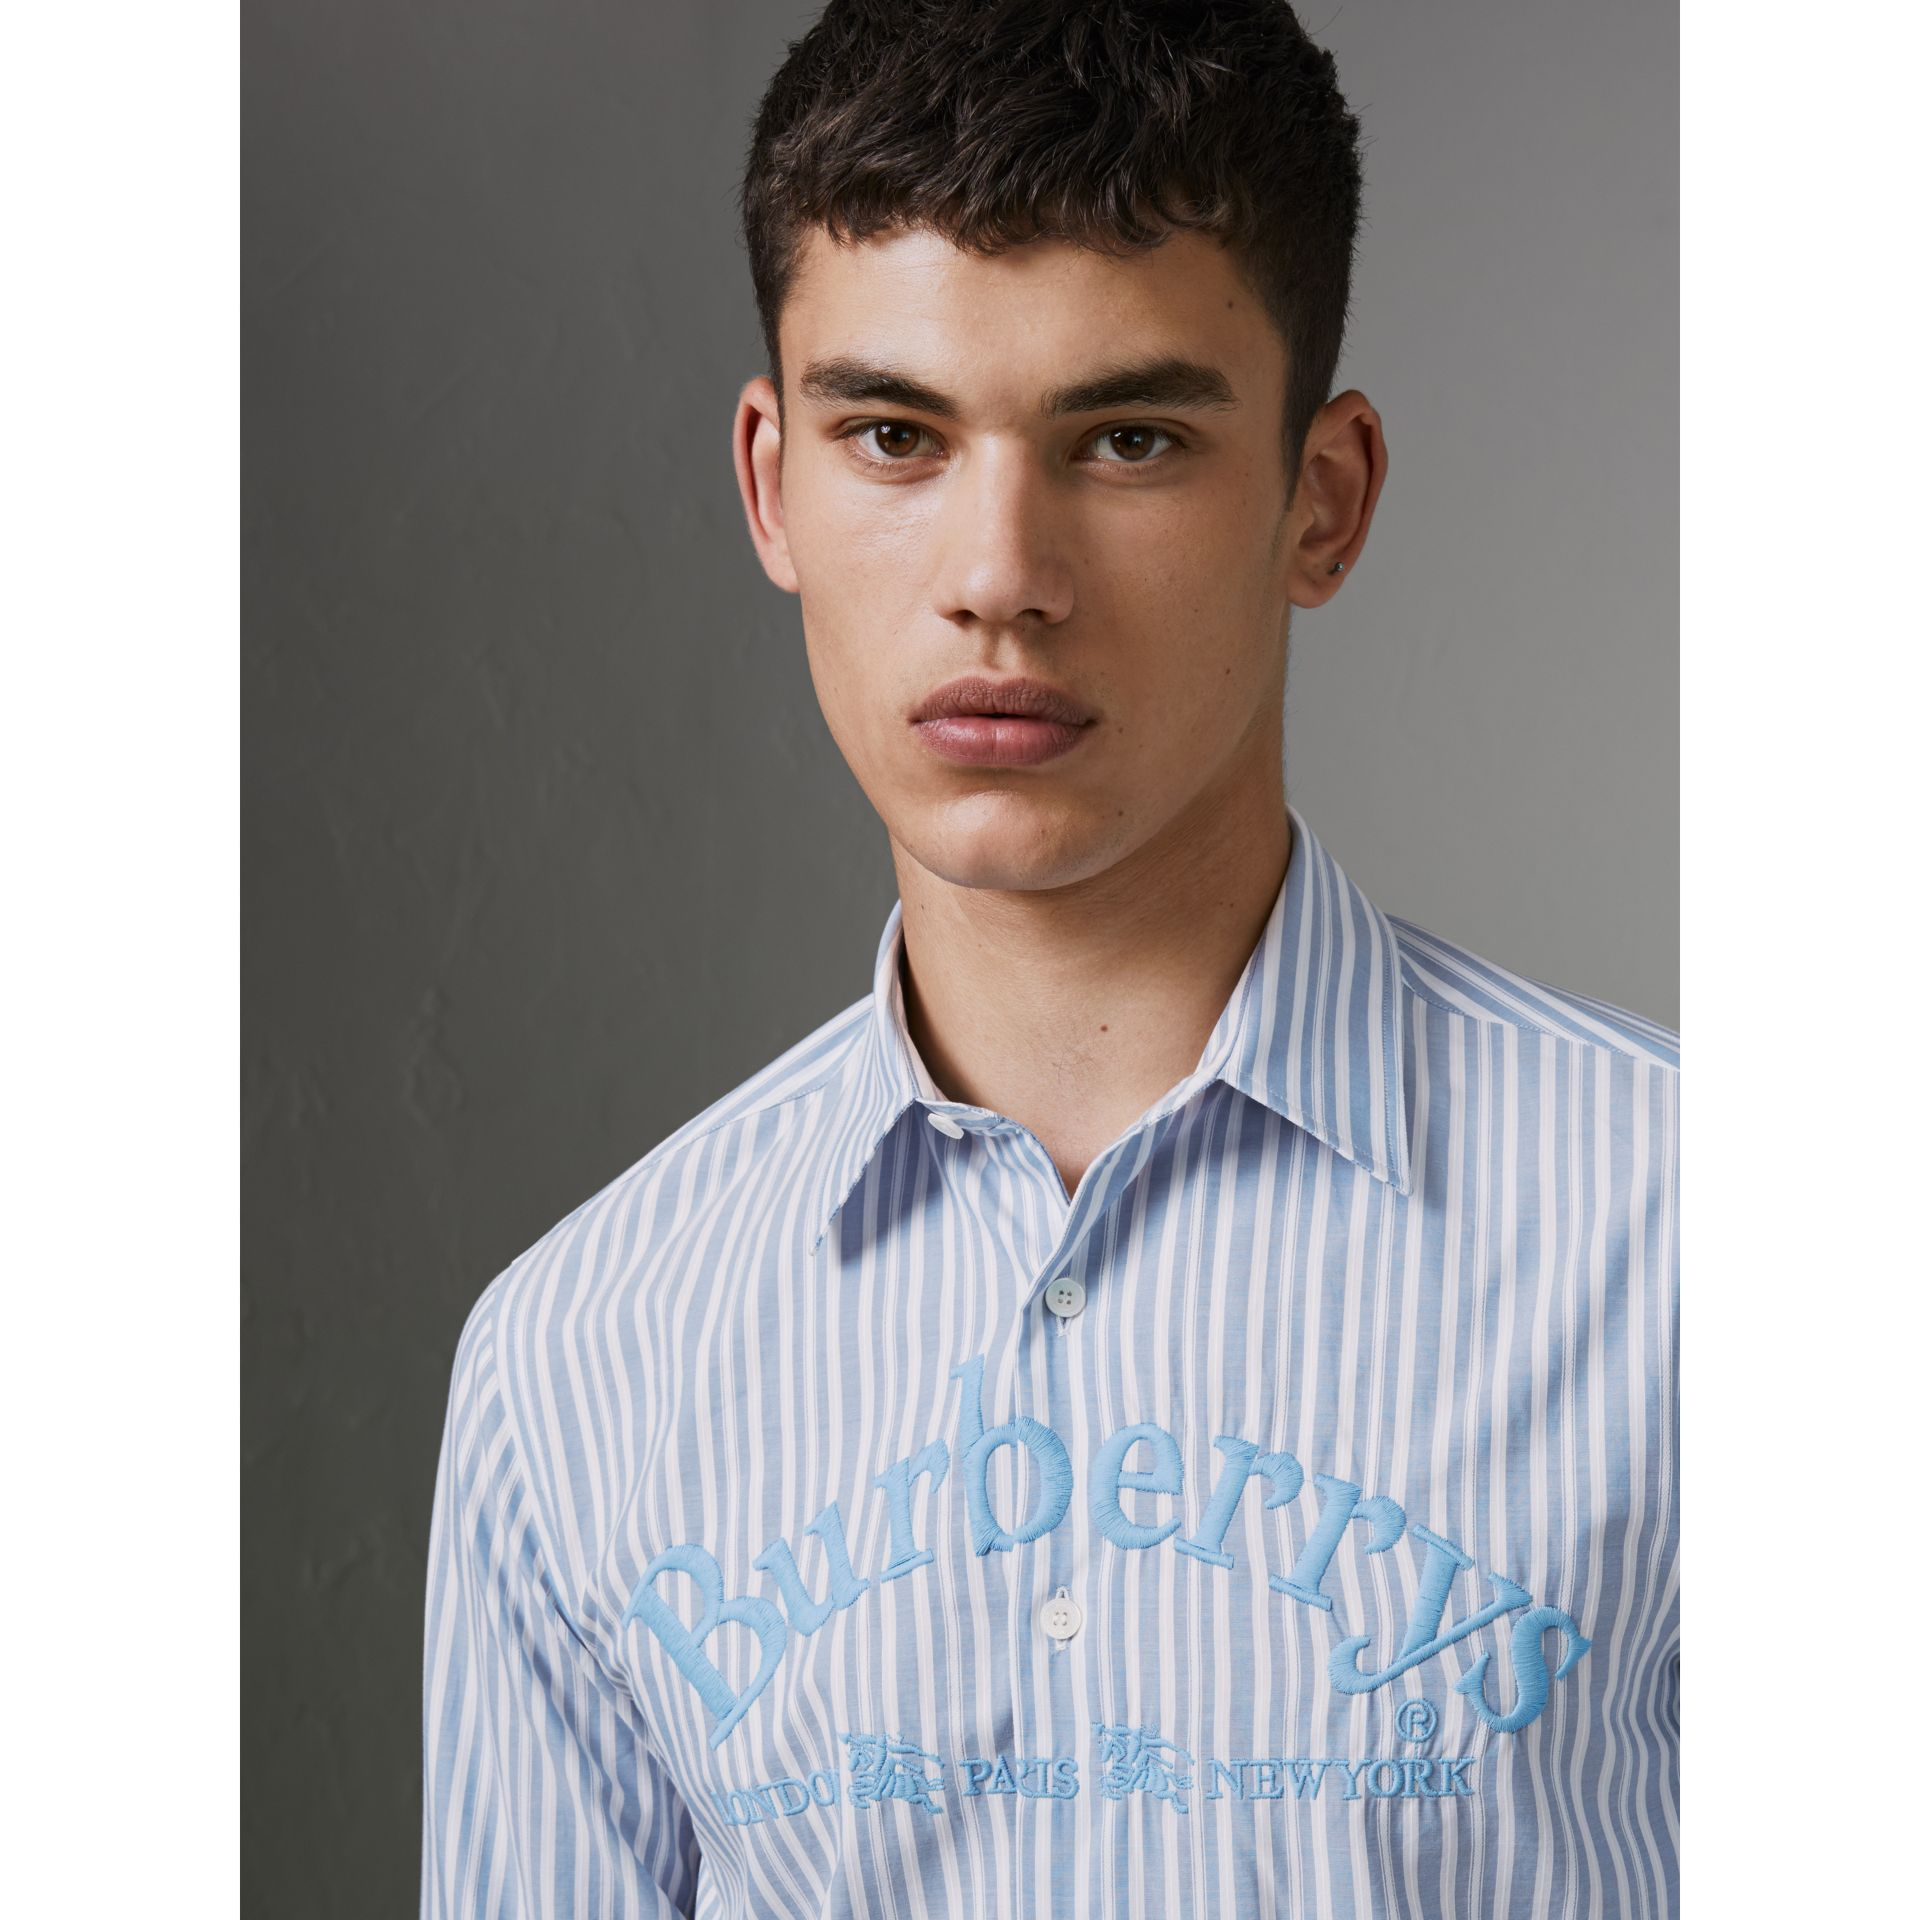 Embroidered Archive Logo Striped Cotton Shirt in Powder Blue - Men | Burberry - gallery image 1